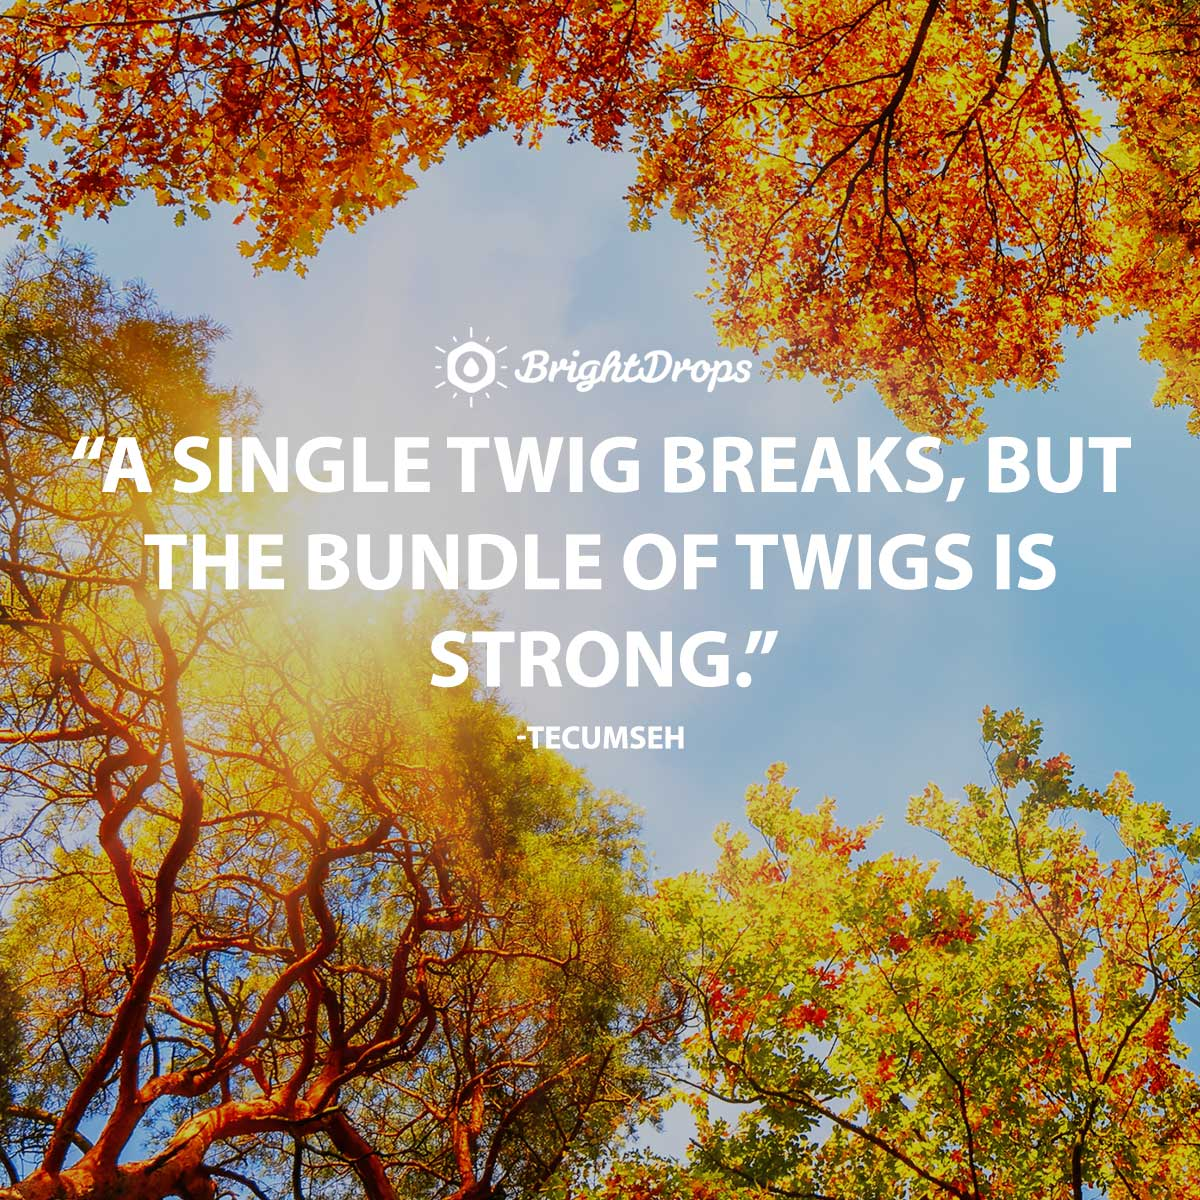 A single twig breaks, but the bundle of twigs is strong. -Tecumseh